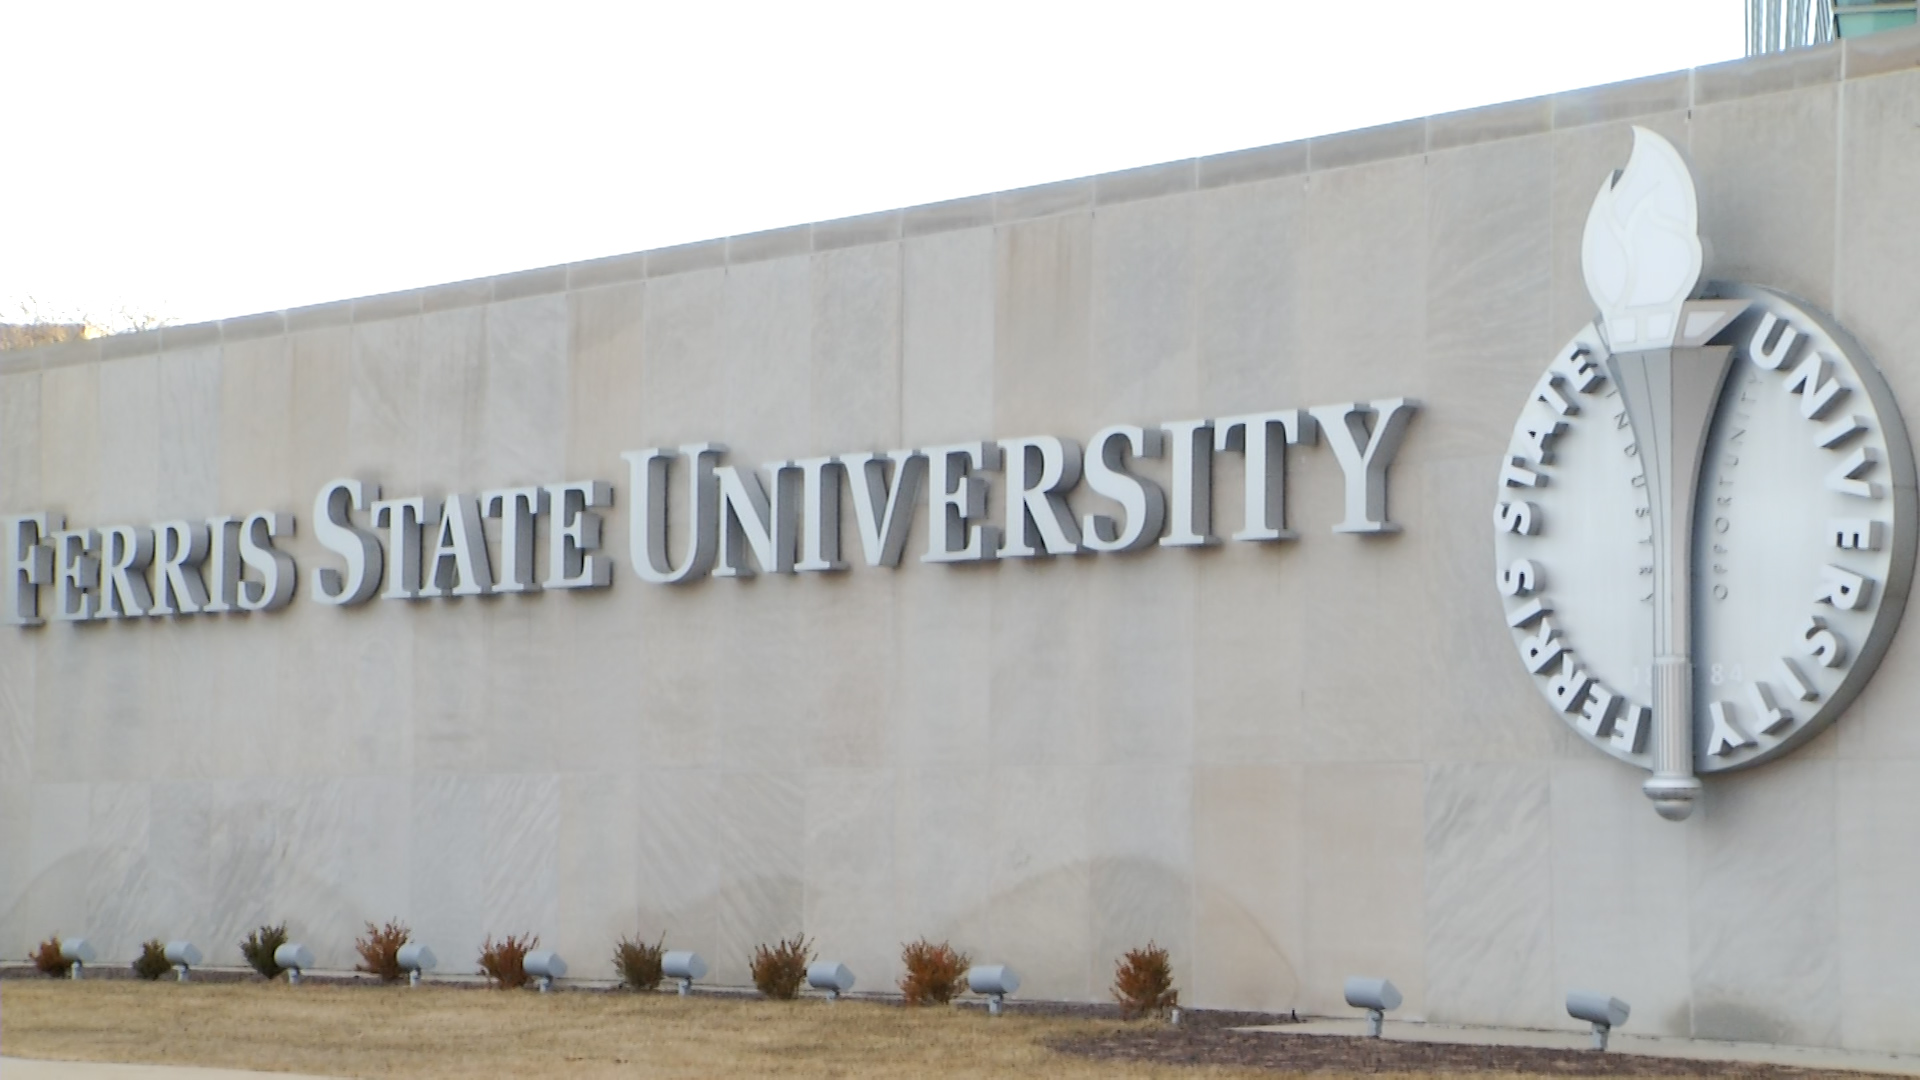 Ferris State Academic Calendar 2022.Ferris State University Introduces Free Tuition Program For Incoming Low Income Students 9 10 News